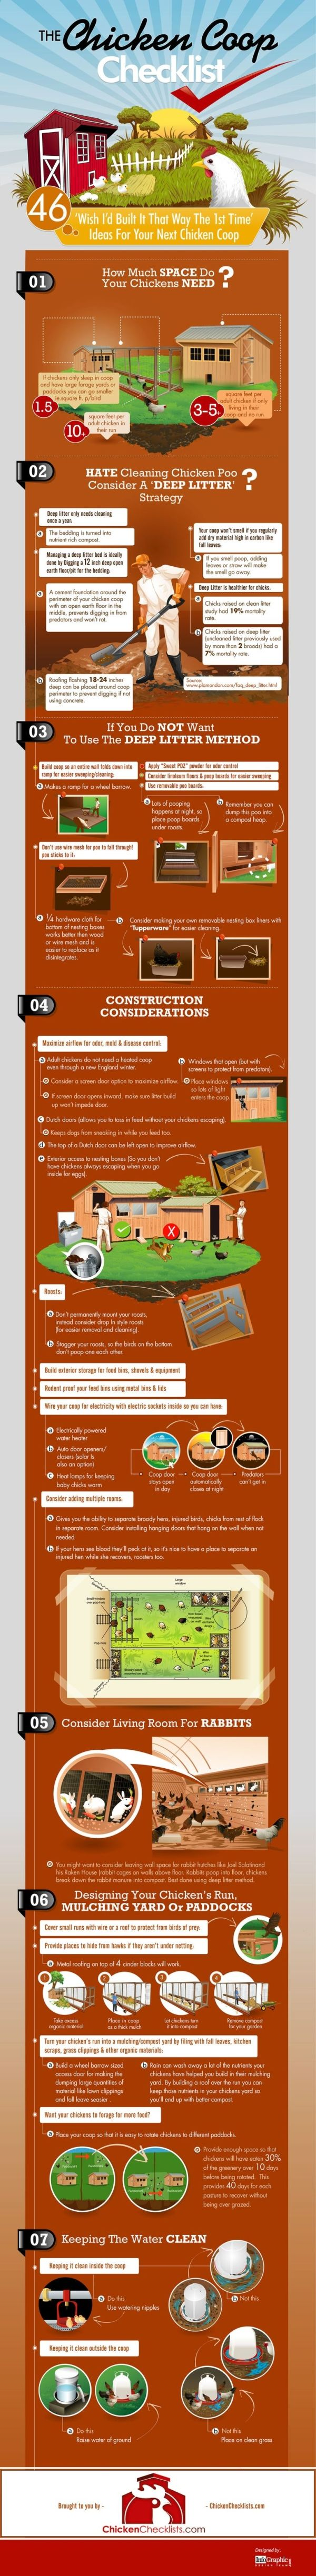 The Chicken Coop Checklist by esperanza I friggen love this ... makes planning a…